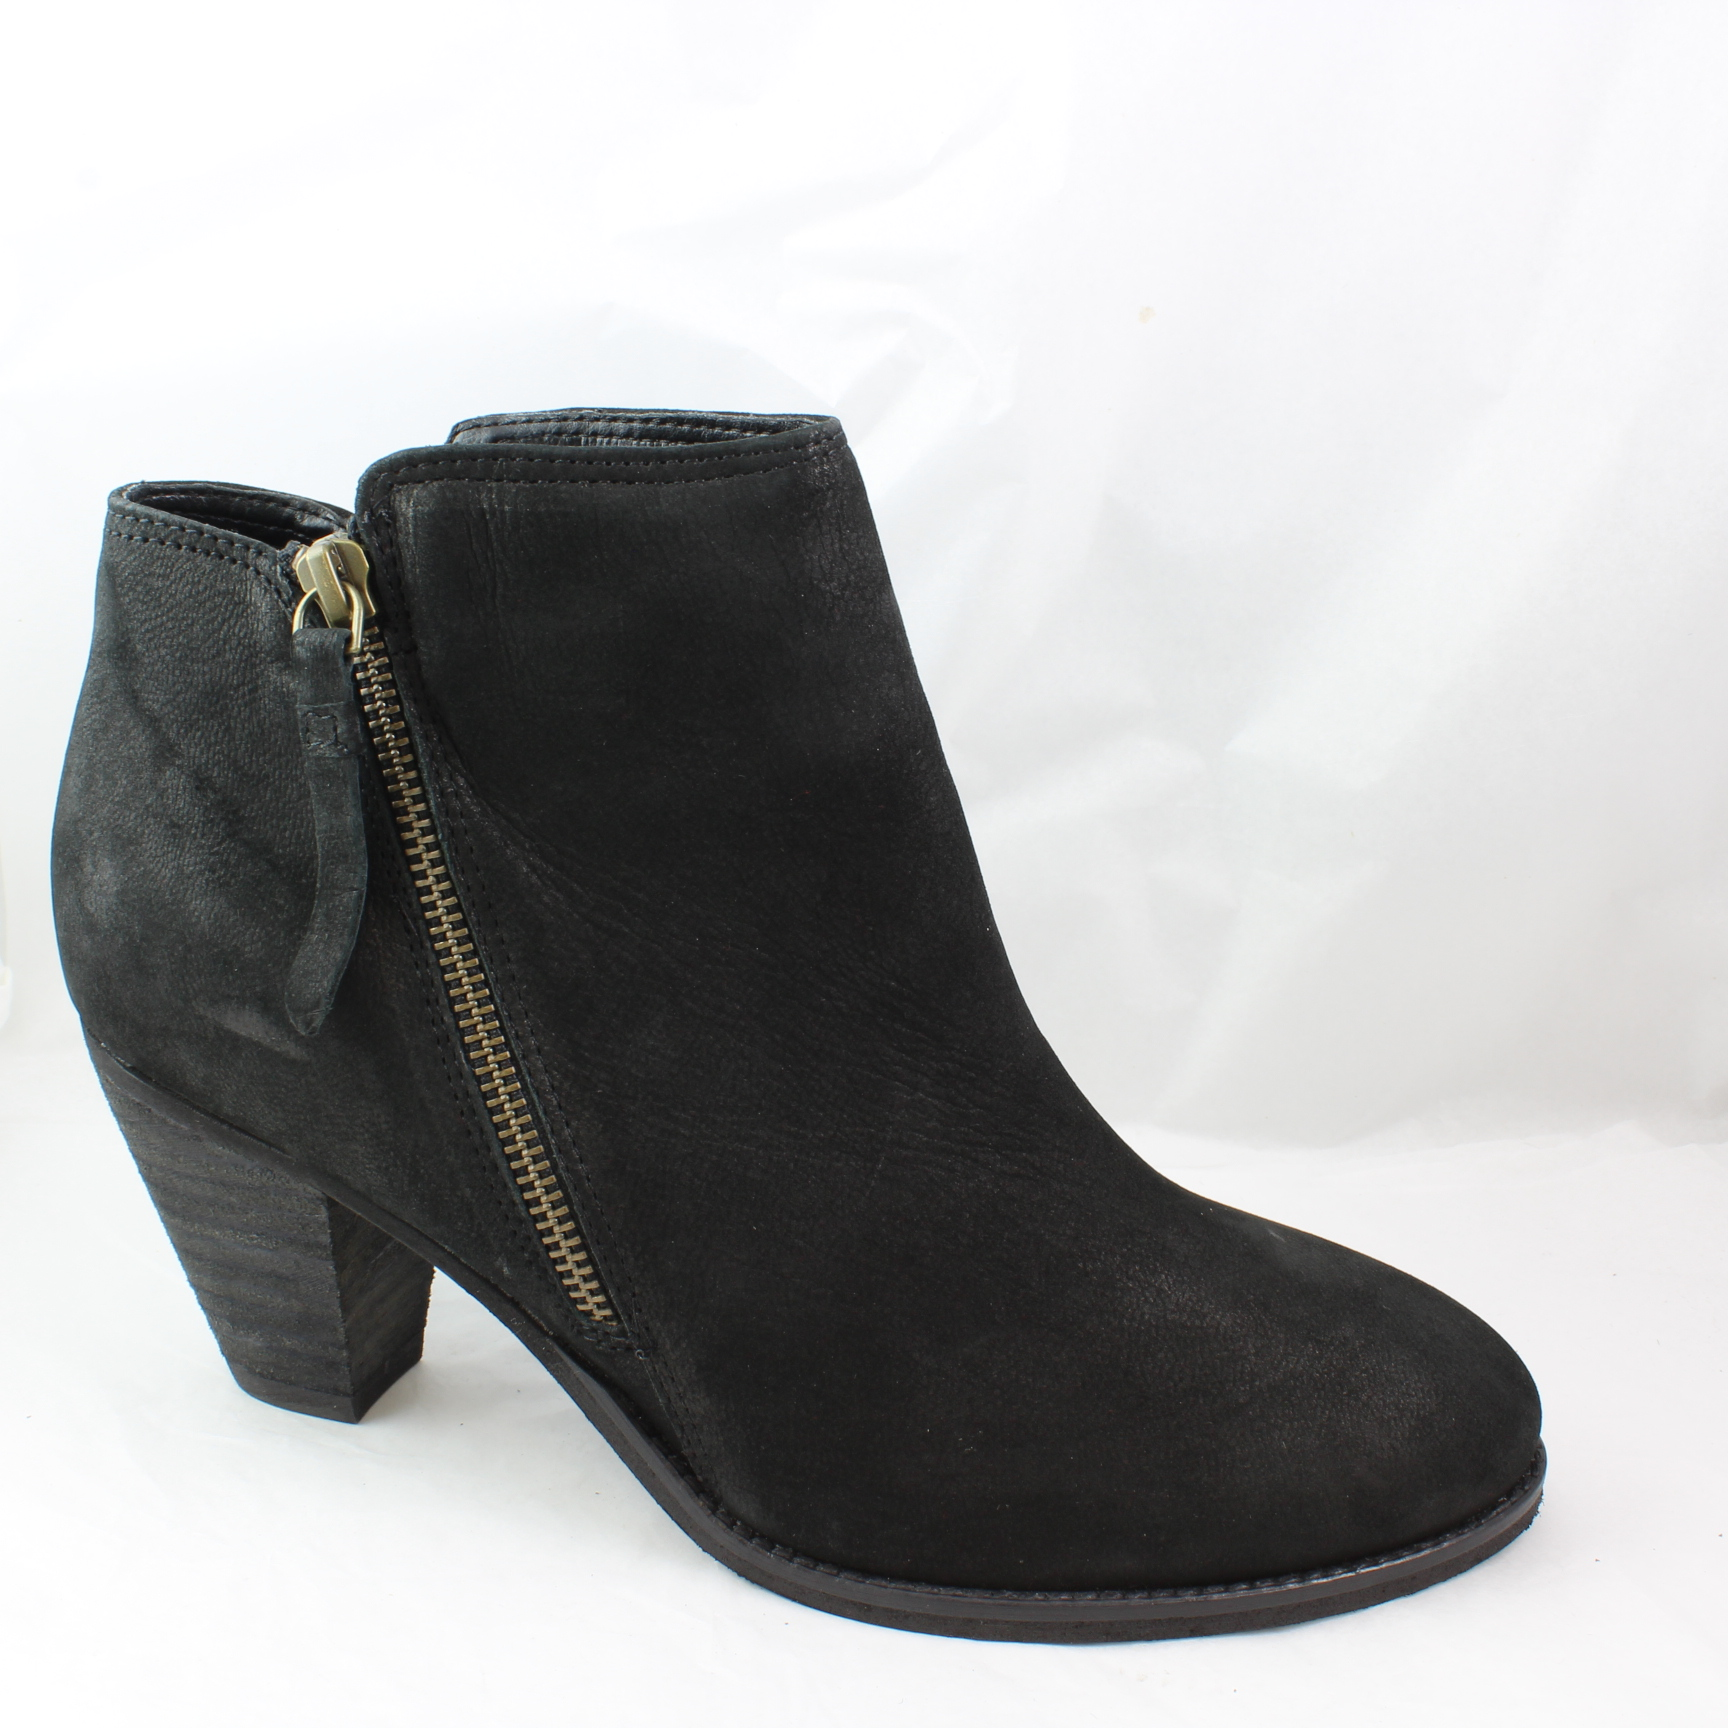 womens office black suede ankle boots uk size 6 ex